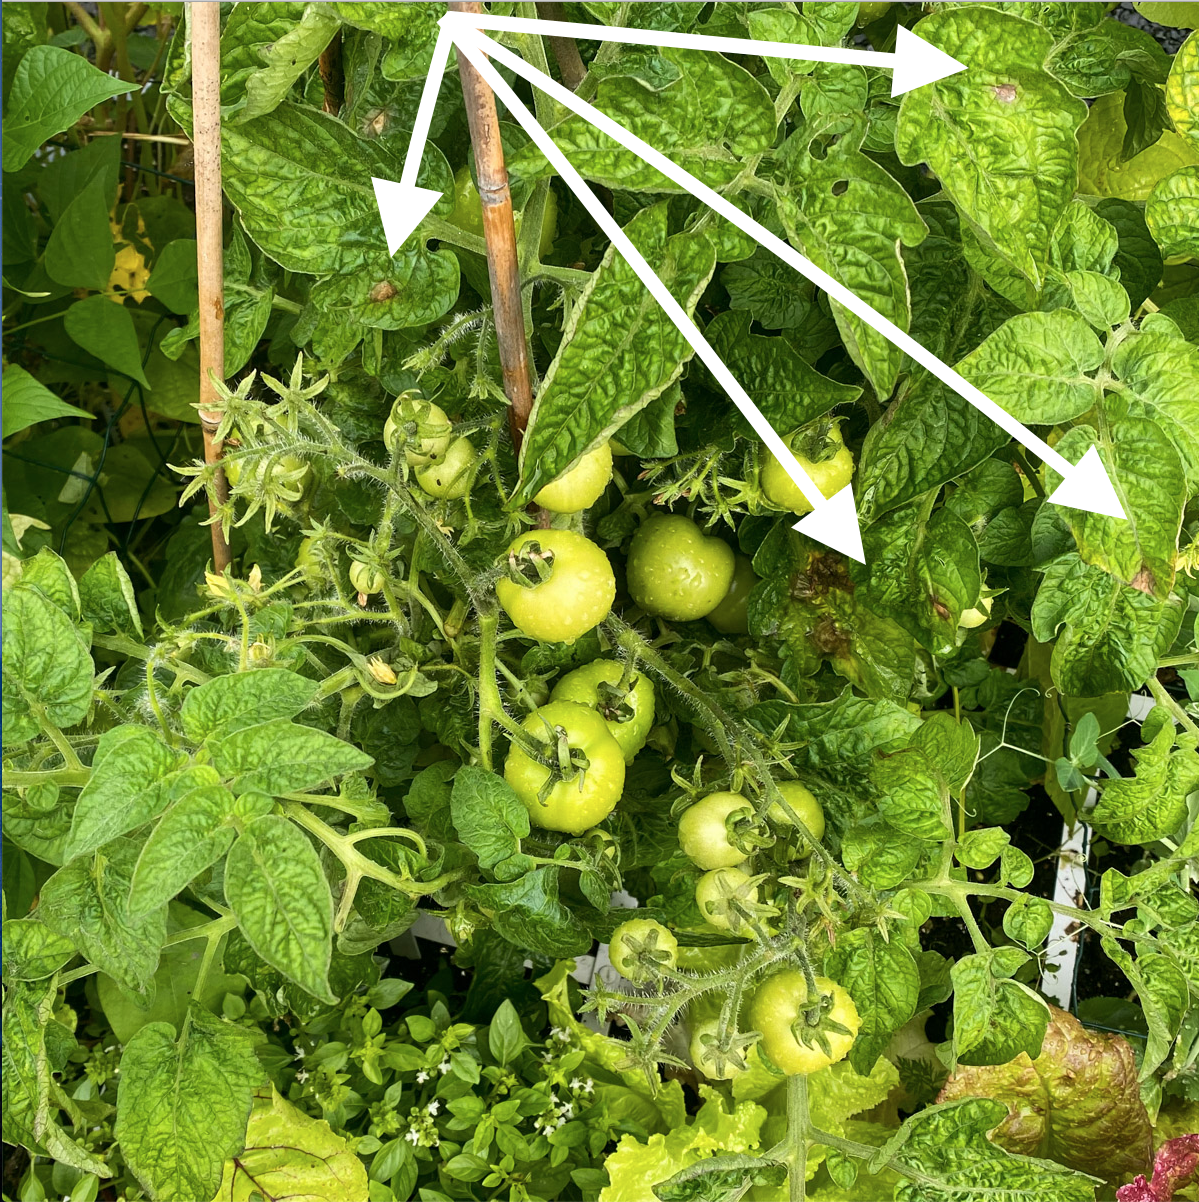 blog-early-august-in-the-vegetable-garden10.png